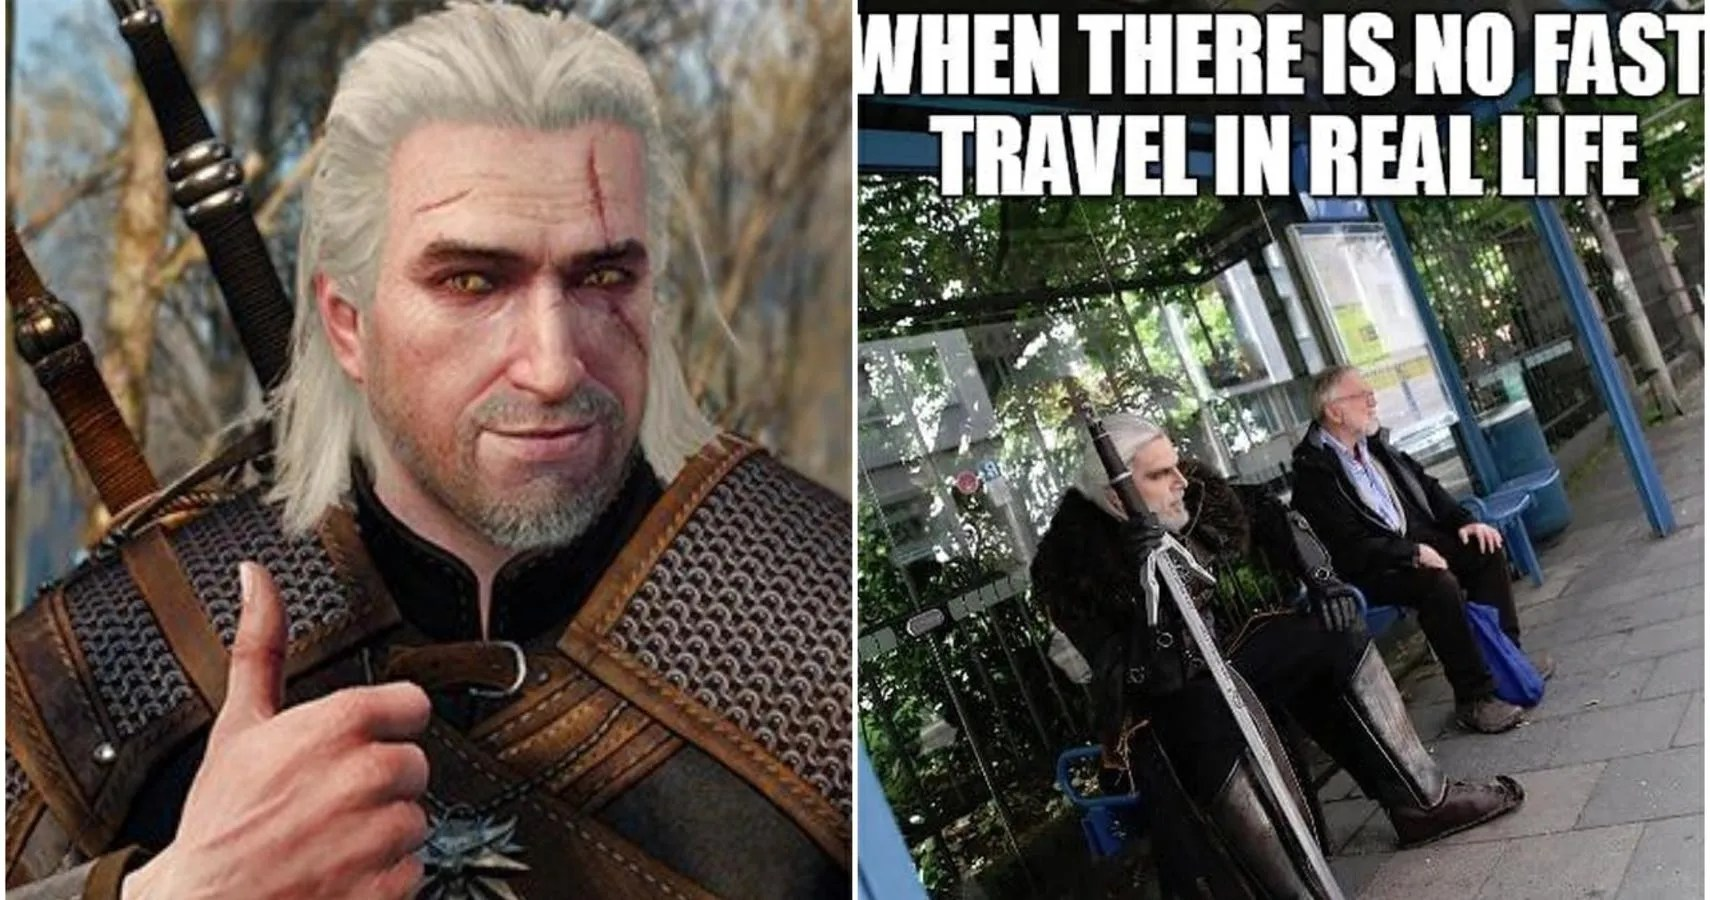 10 Witcher Logic Memes That Are Too Hilarious For Words